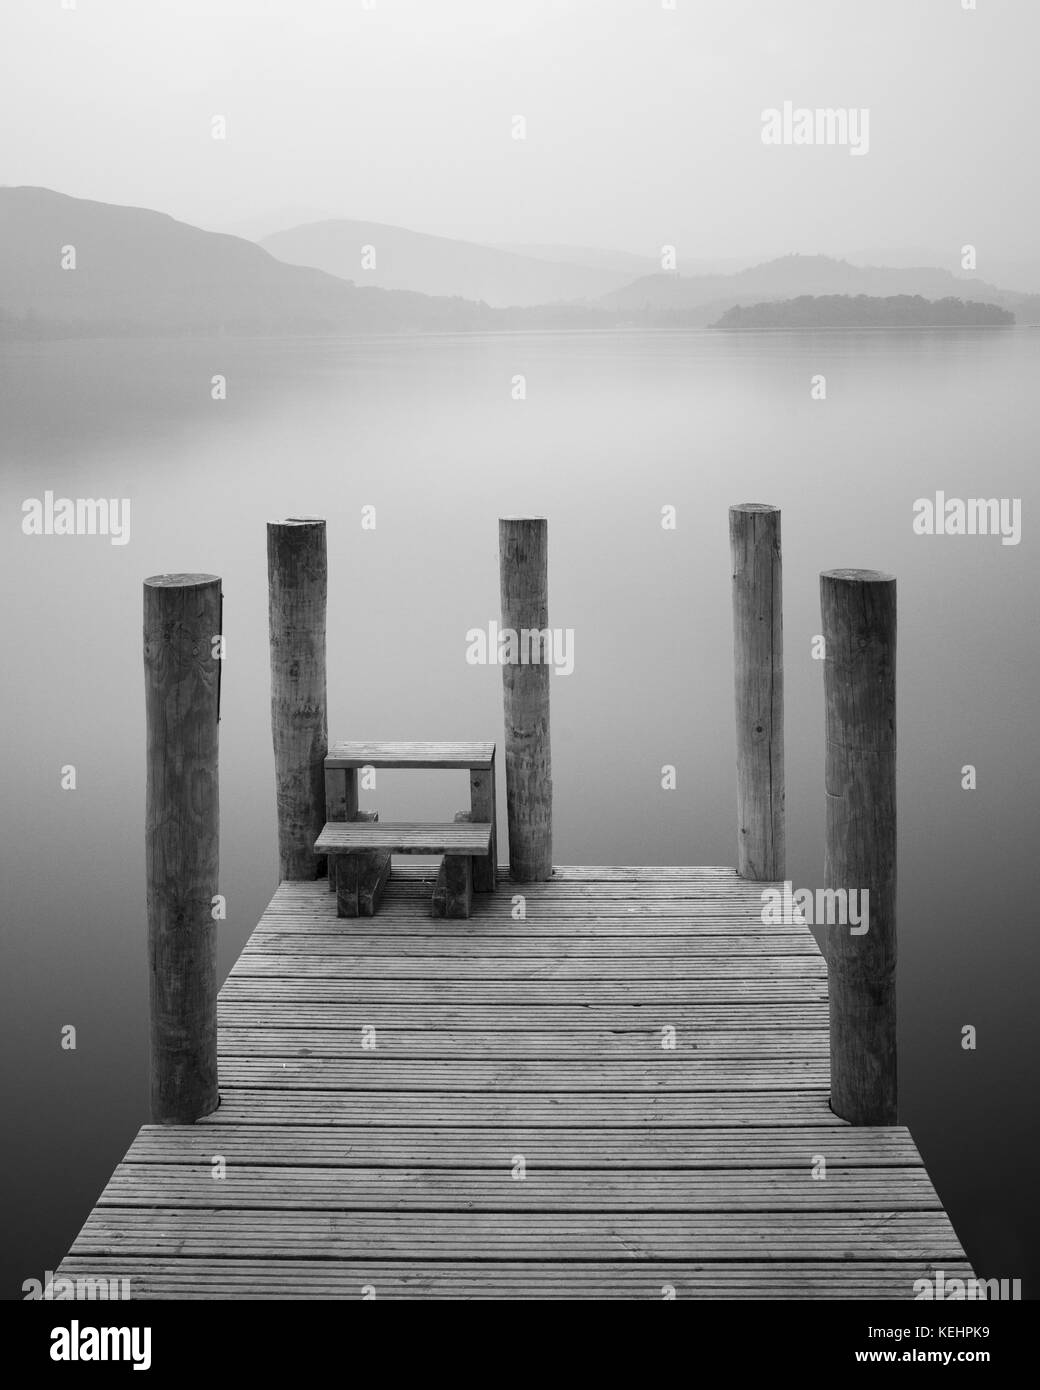 Jetty Pier Boat Landing Derwentwater Lake District Foggy Peaceful Calm Meditation - Stock Image